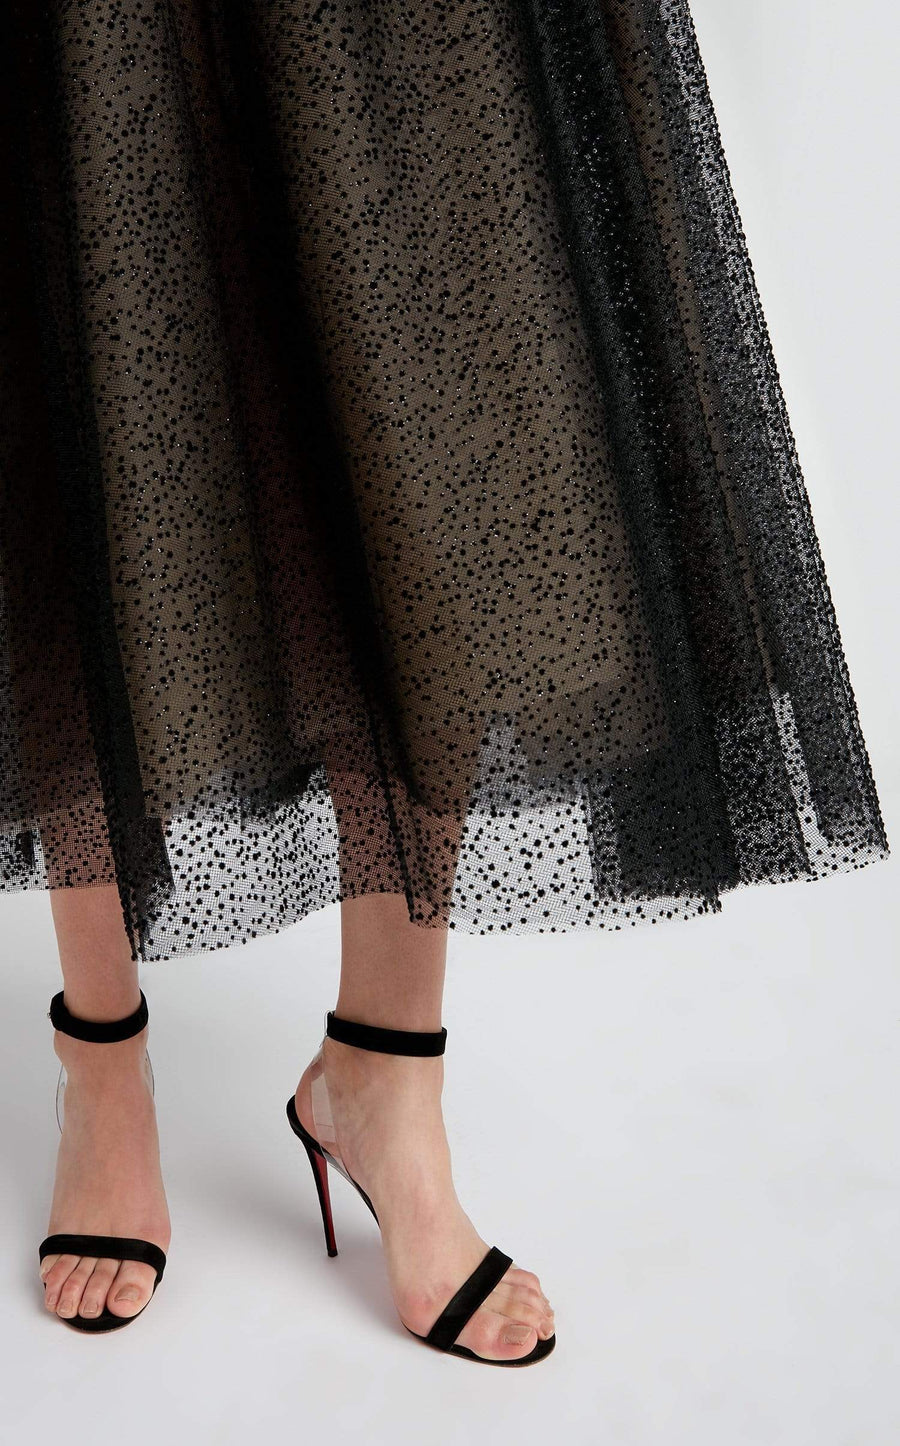 Mulligan Skirt In Black from Roland Mouret